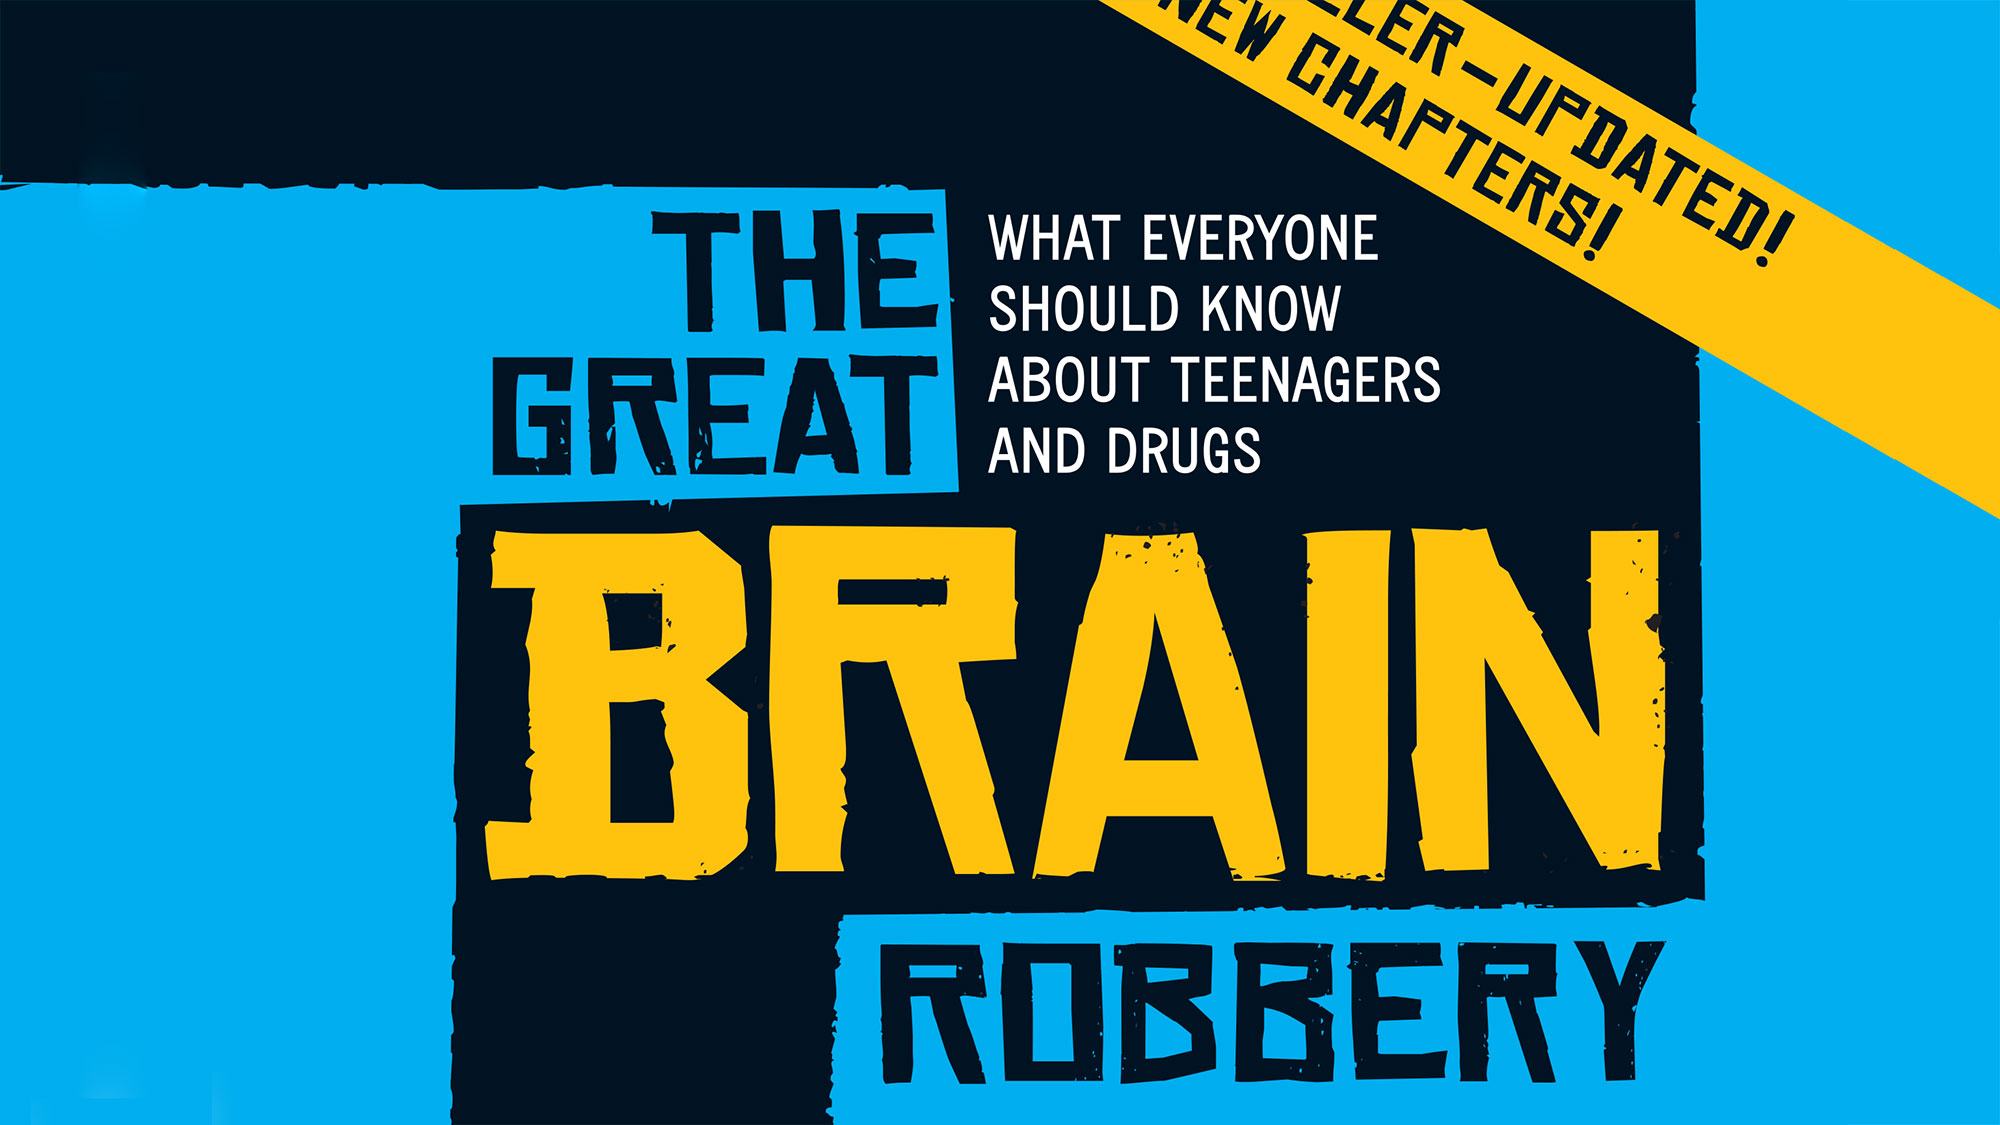 Print: Great Brain Robbery - book cover redesign